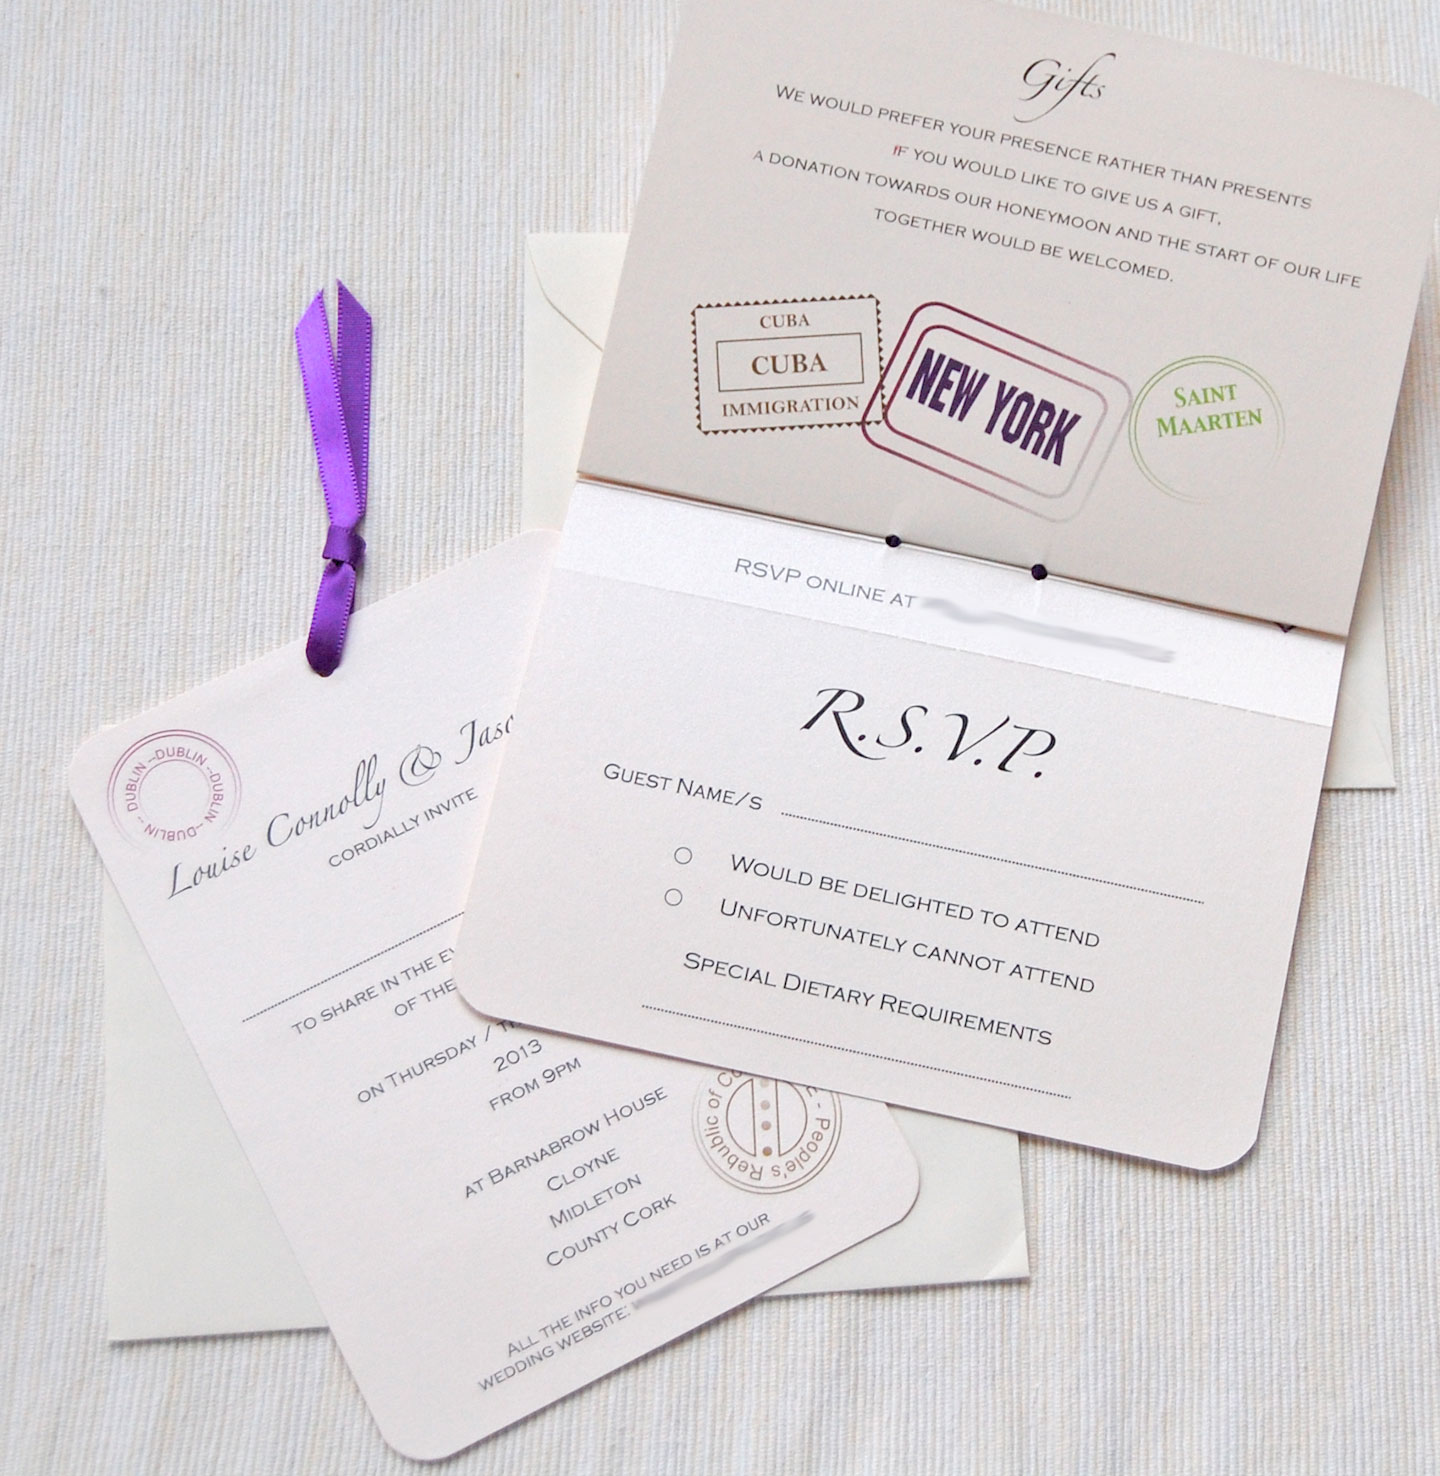 Lots of love invitations posted on march 20th 2013 in real wedding invitations tags ivory passport invitation real weddings wedding invitations stopboris Choice Image